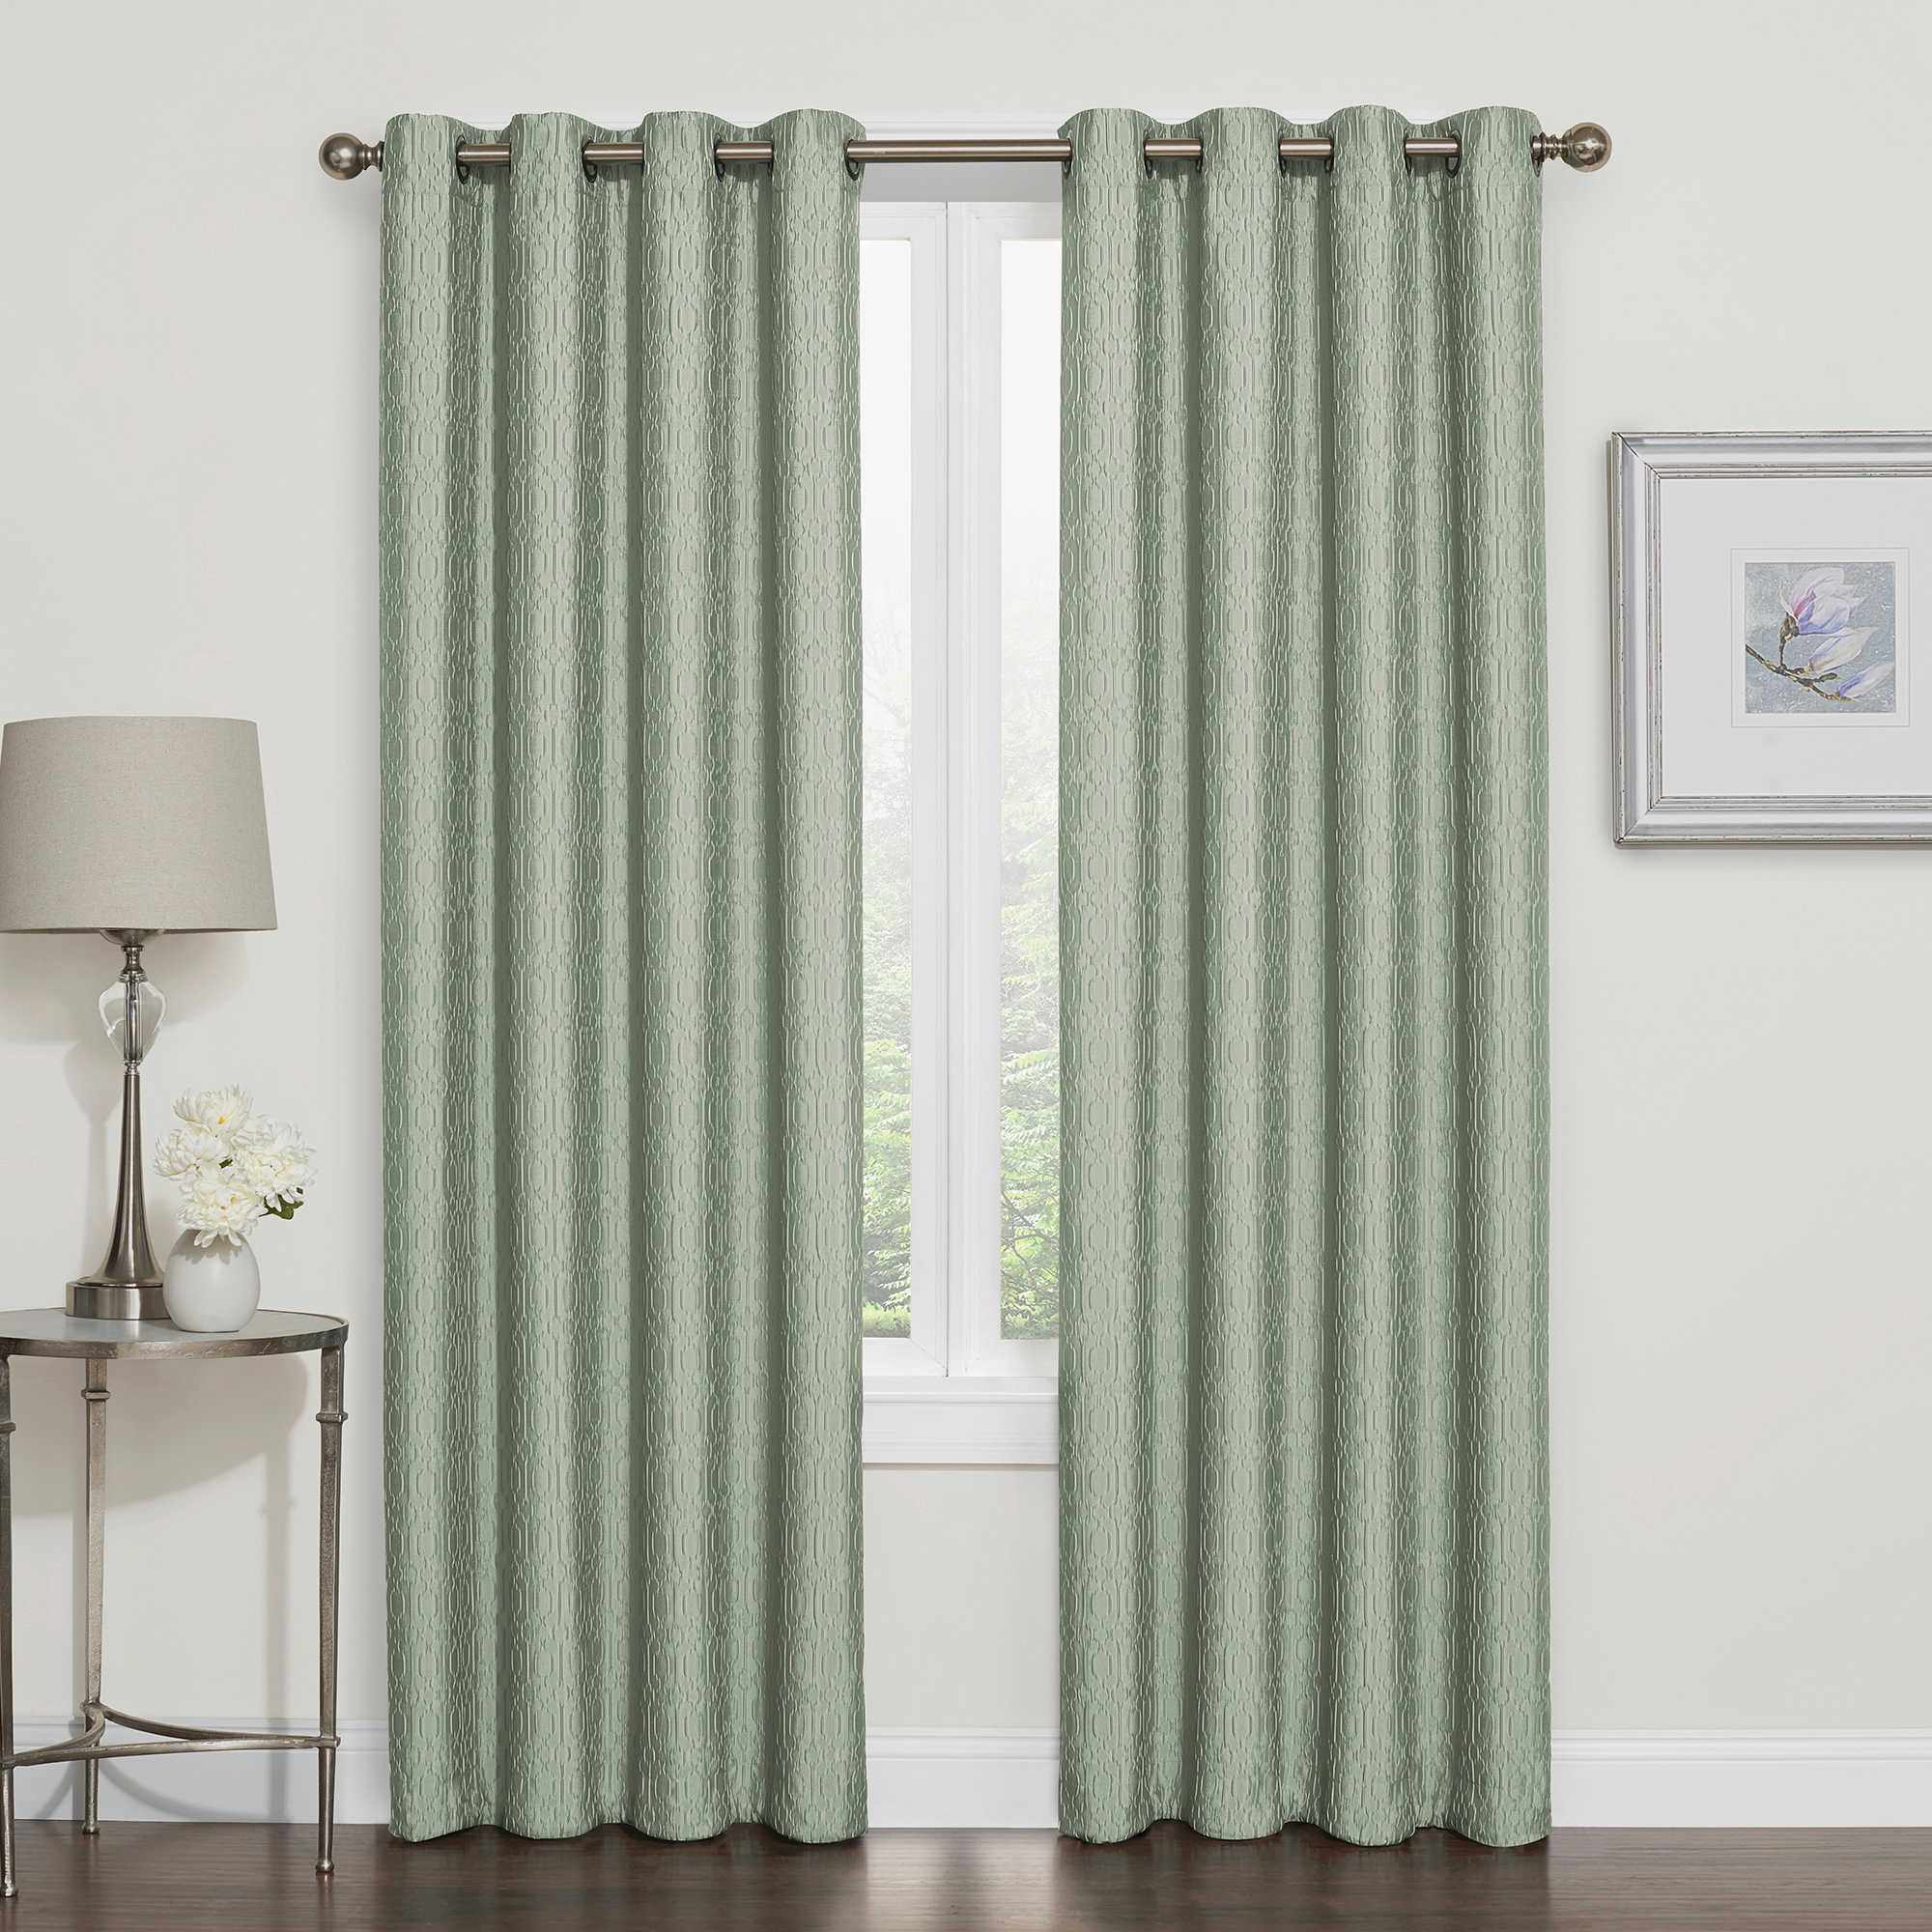 Window Curtains   Drapes   Grommet  Rod Pocket   more styles   Bed Bath    Beyond. Window Curtains   Drapes   Grommet  Rod Pocket   more styles   Bed